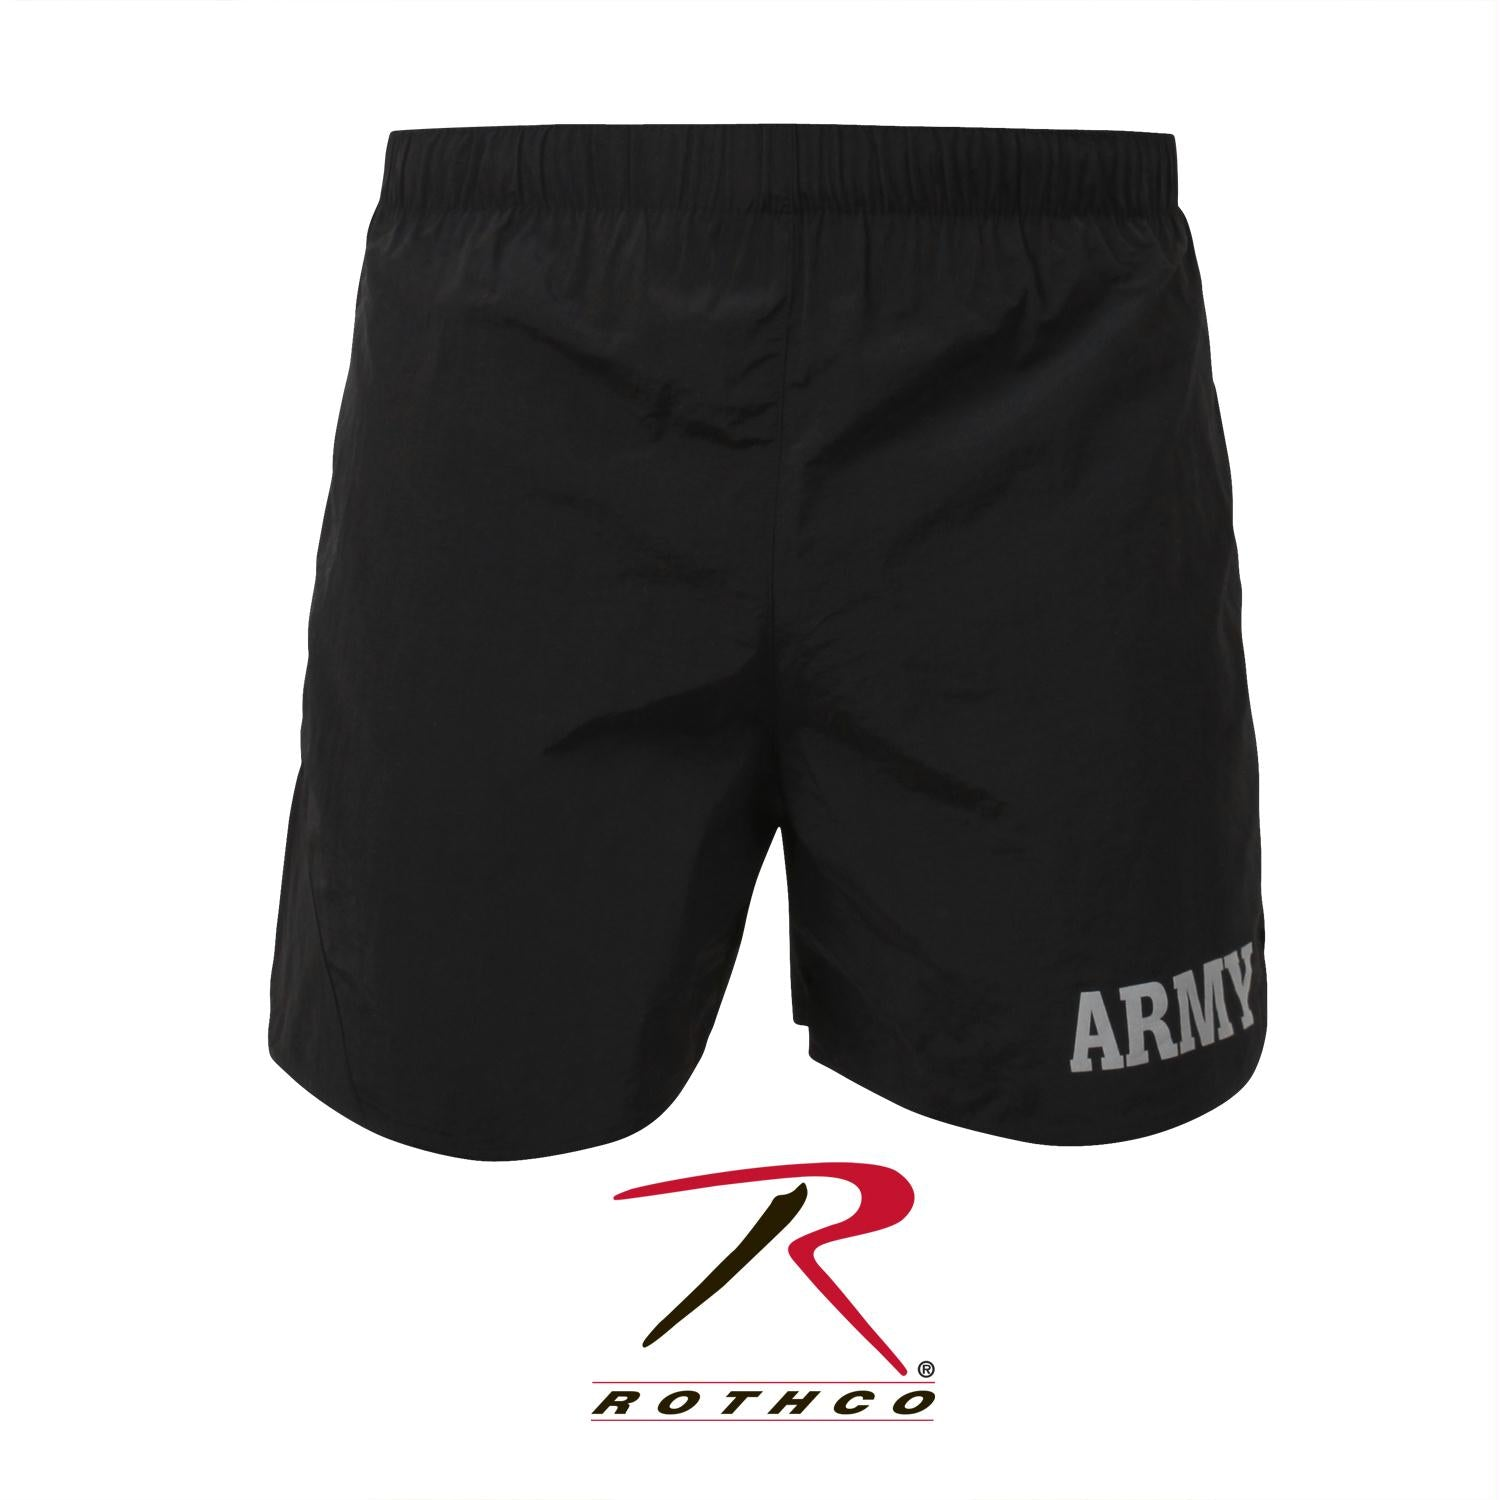 Rothco Physical Training  Shorts - Army / S